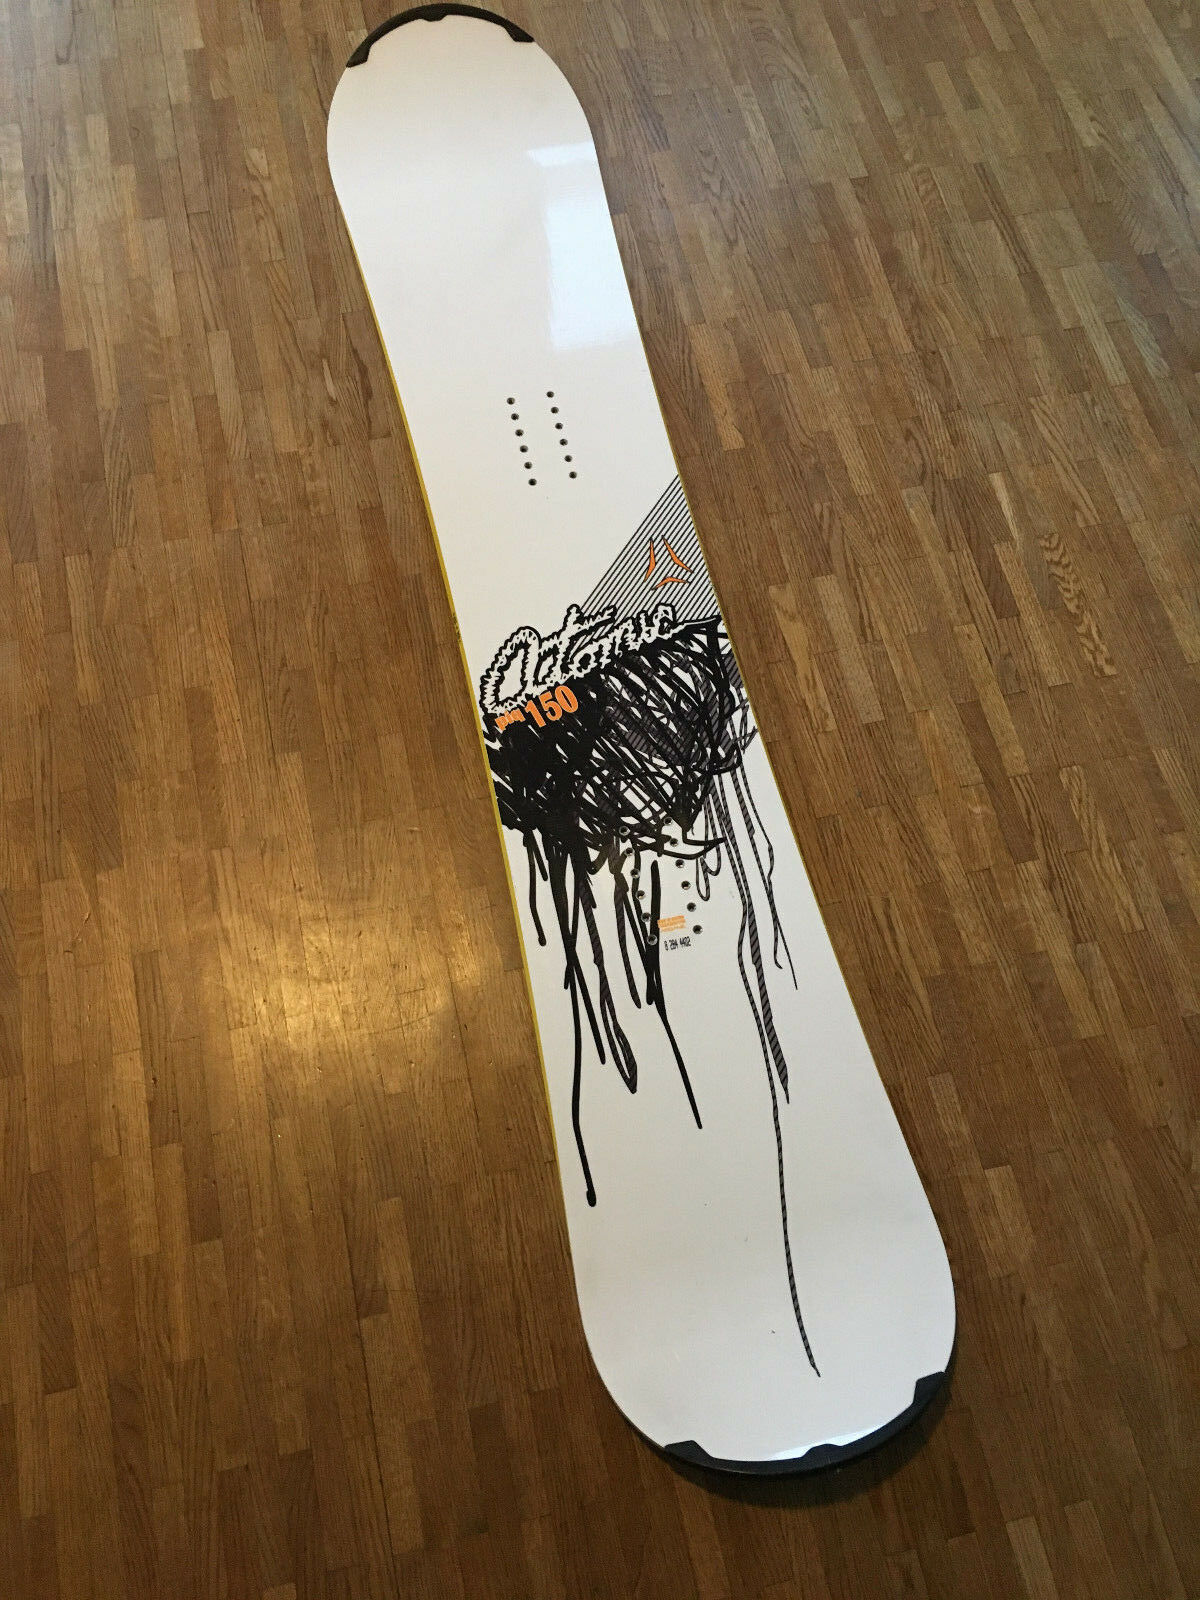 ATOMIC PIQ 150 Snowboard All Mountain Allround Camber Board